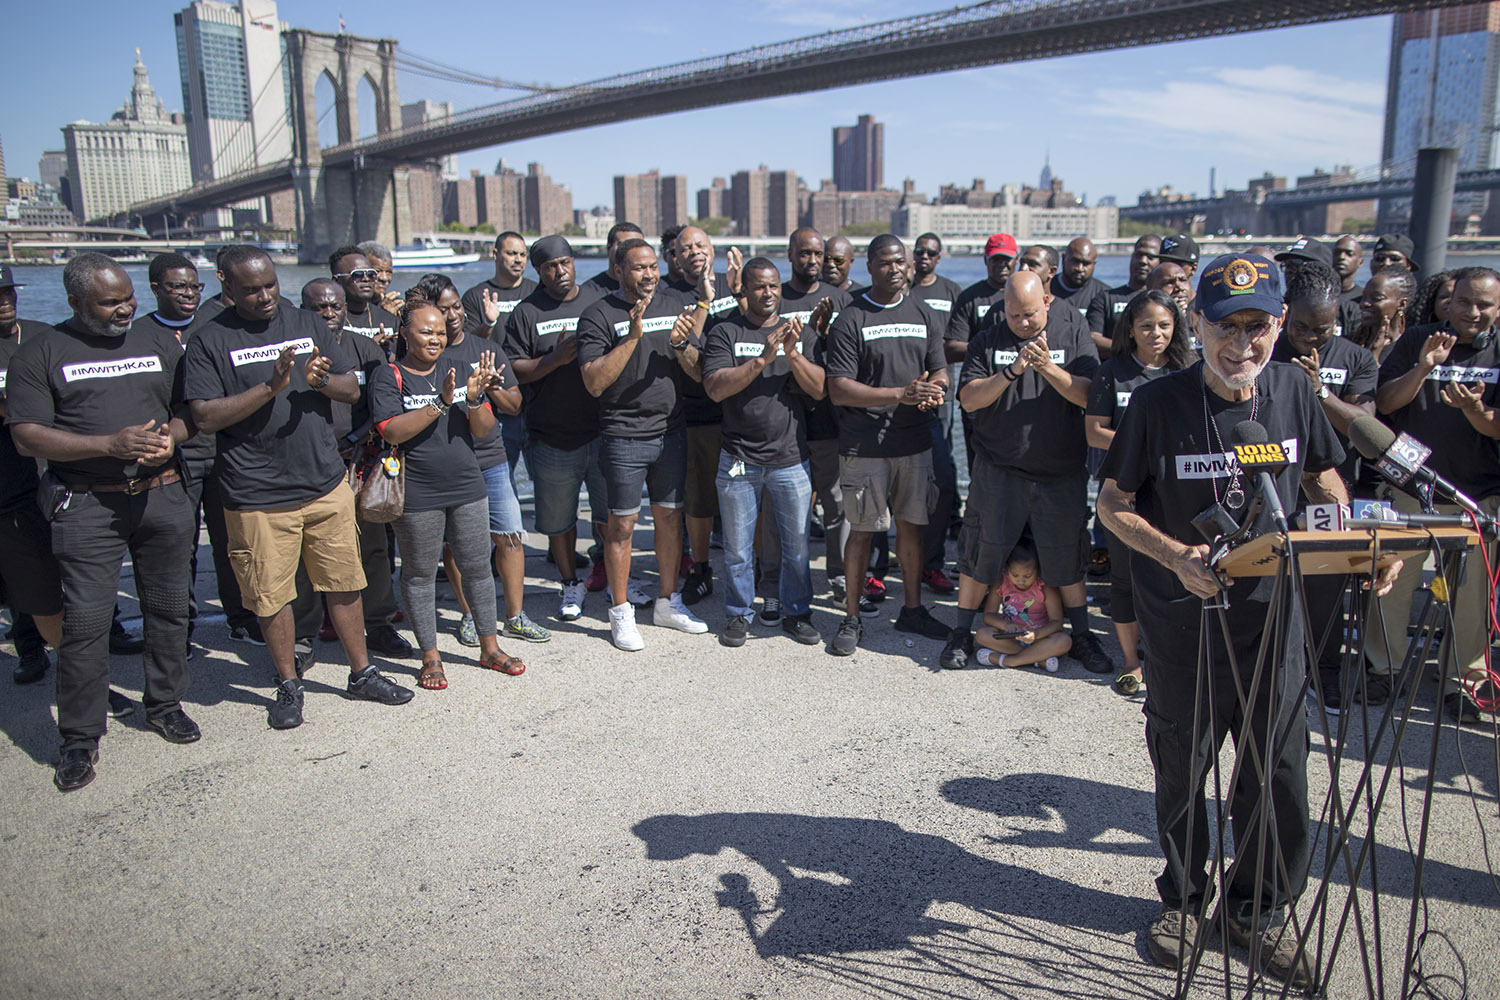 Serpico is surrounded by members of law enforcement as he speaks during a rally to show support for activist and former NFL quarterback Colin Kaepernick in New York on Aug. 19, 2017.